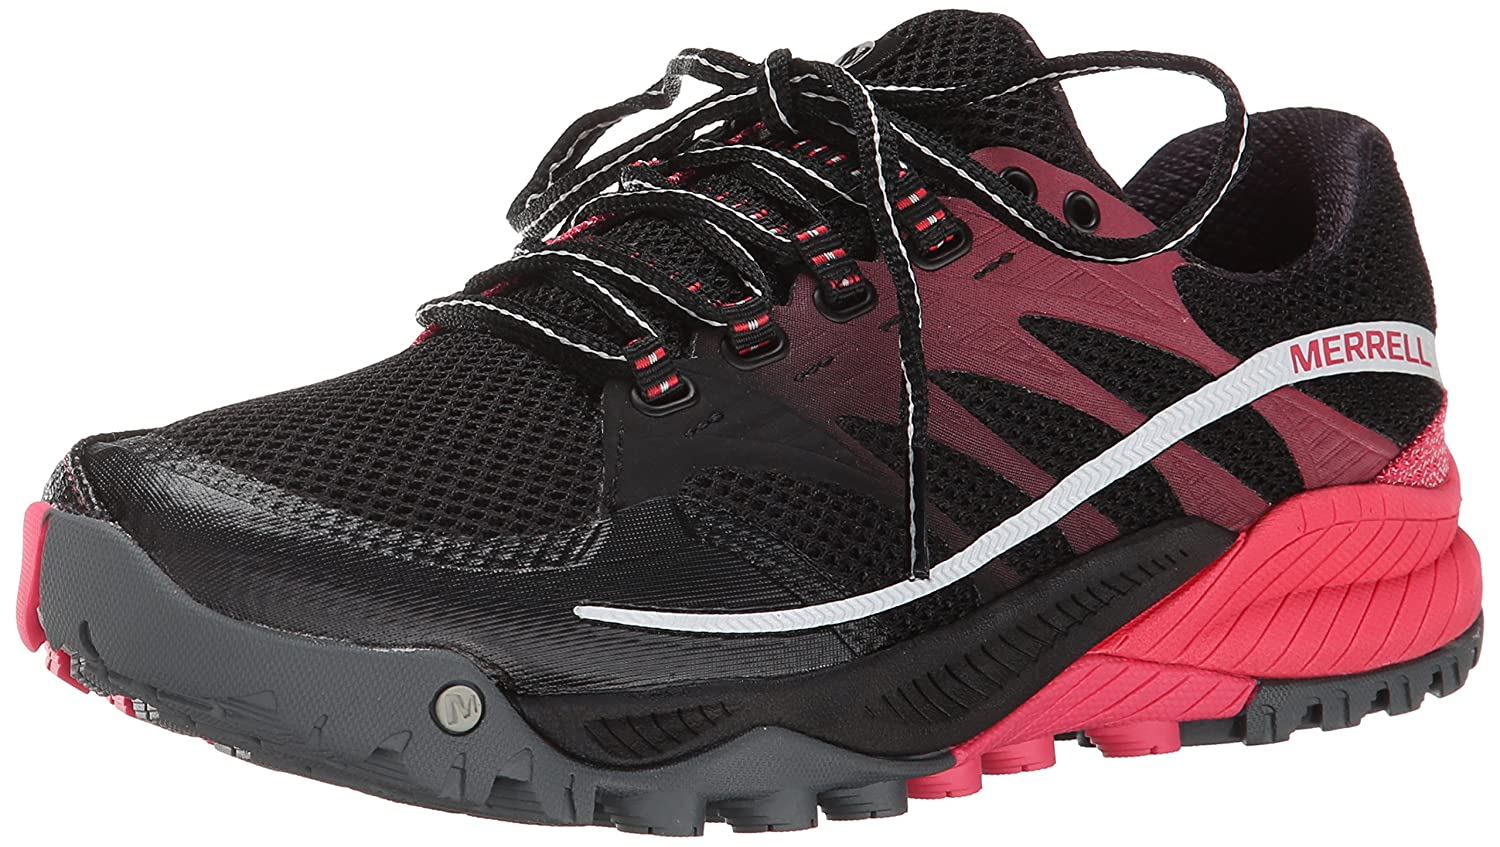 Merrell Women's All Out Charge Trail Running Shoe B0059H5DTC 5.5 B(M) US|Black/Geranium